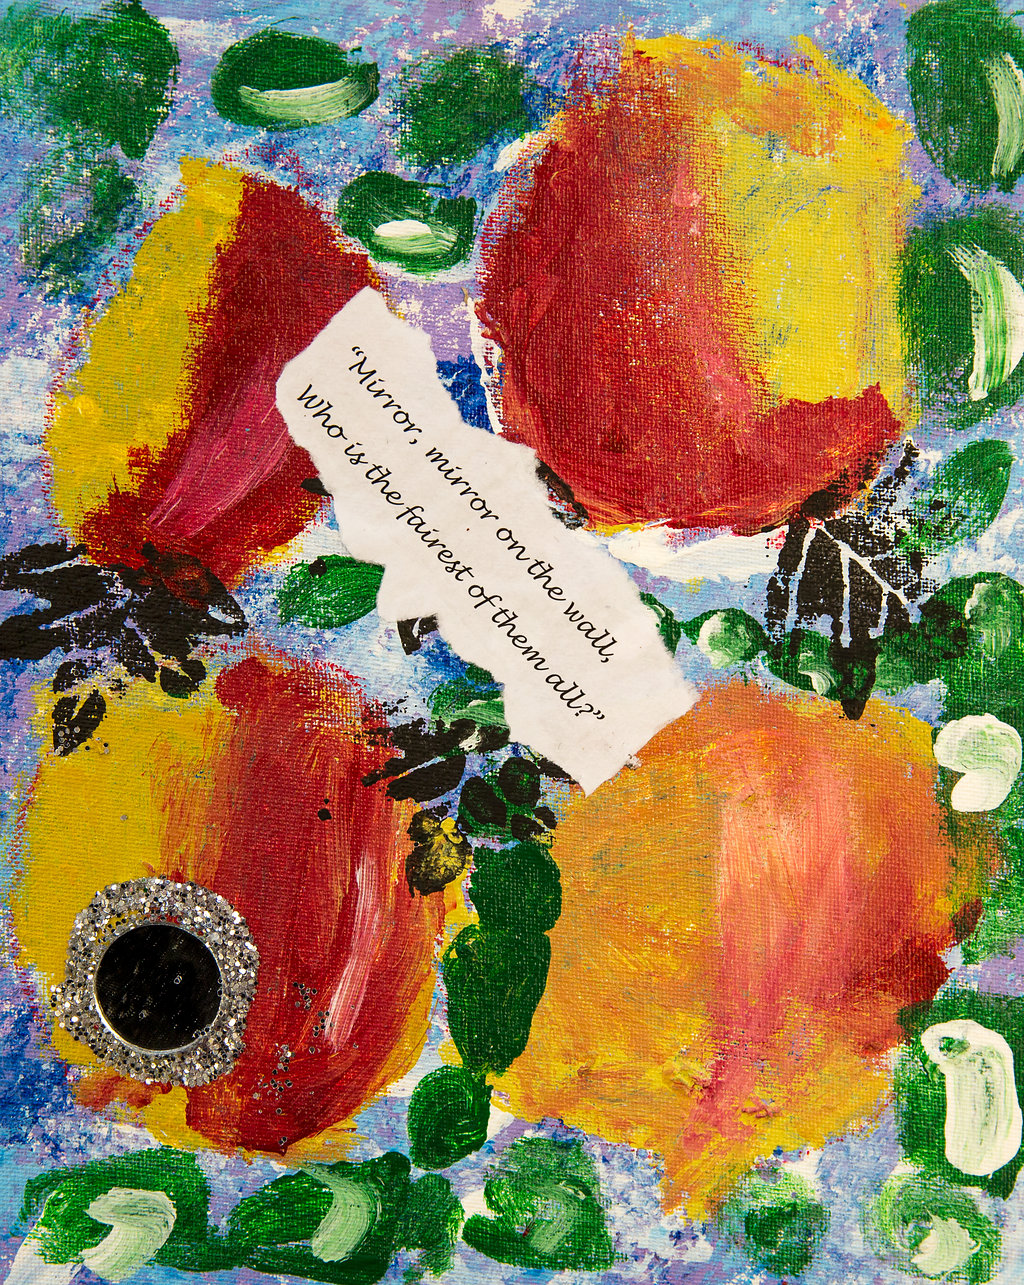 Mixed Media inspired by Snow White by Year 1 - Yeading Infant and Nursery School Hillingdon